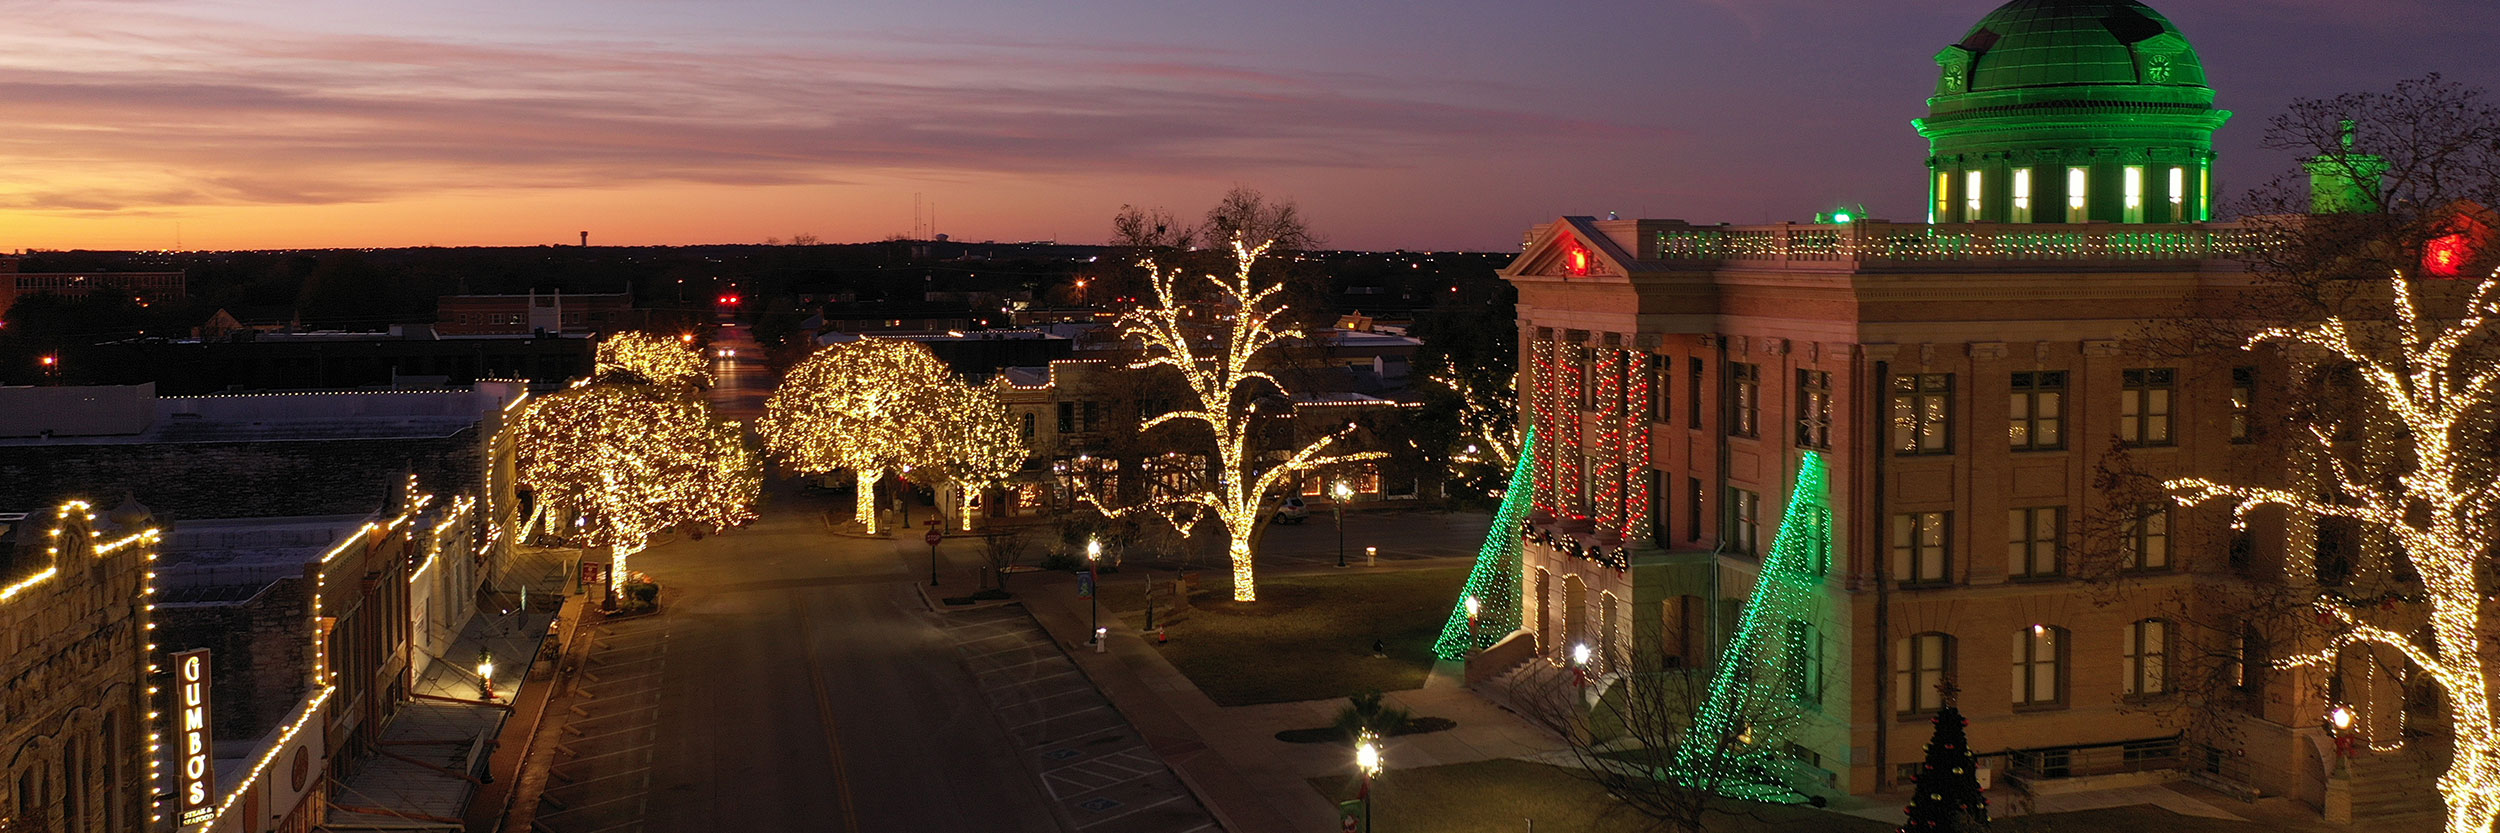 The Historic Courthouse on the Square in Georgetown Lit Up For The Holidays